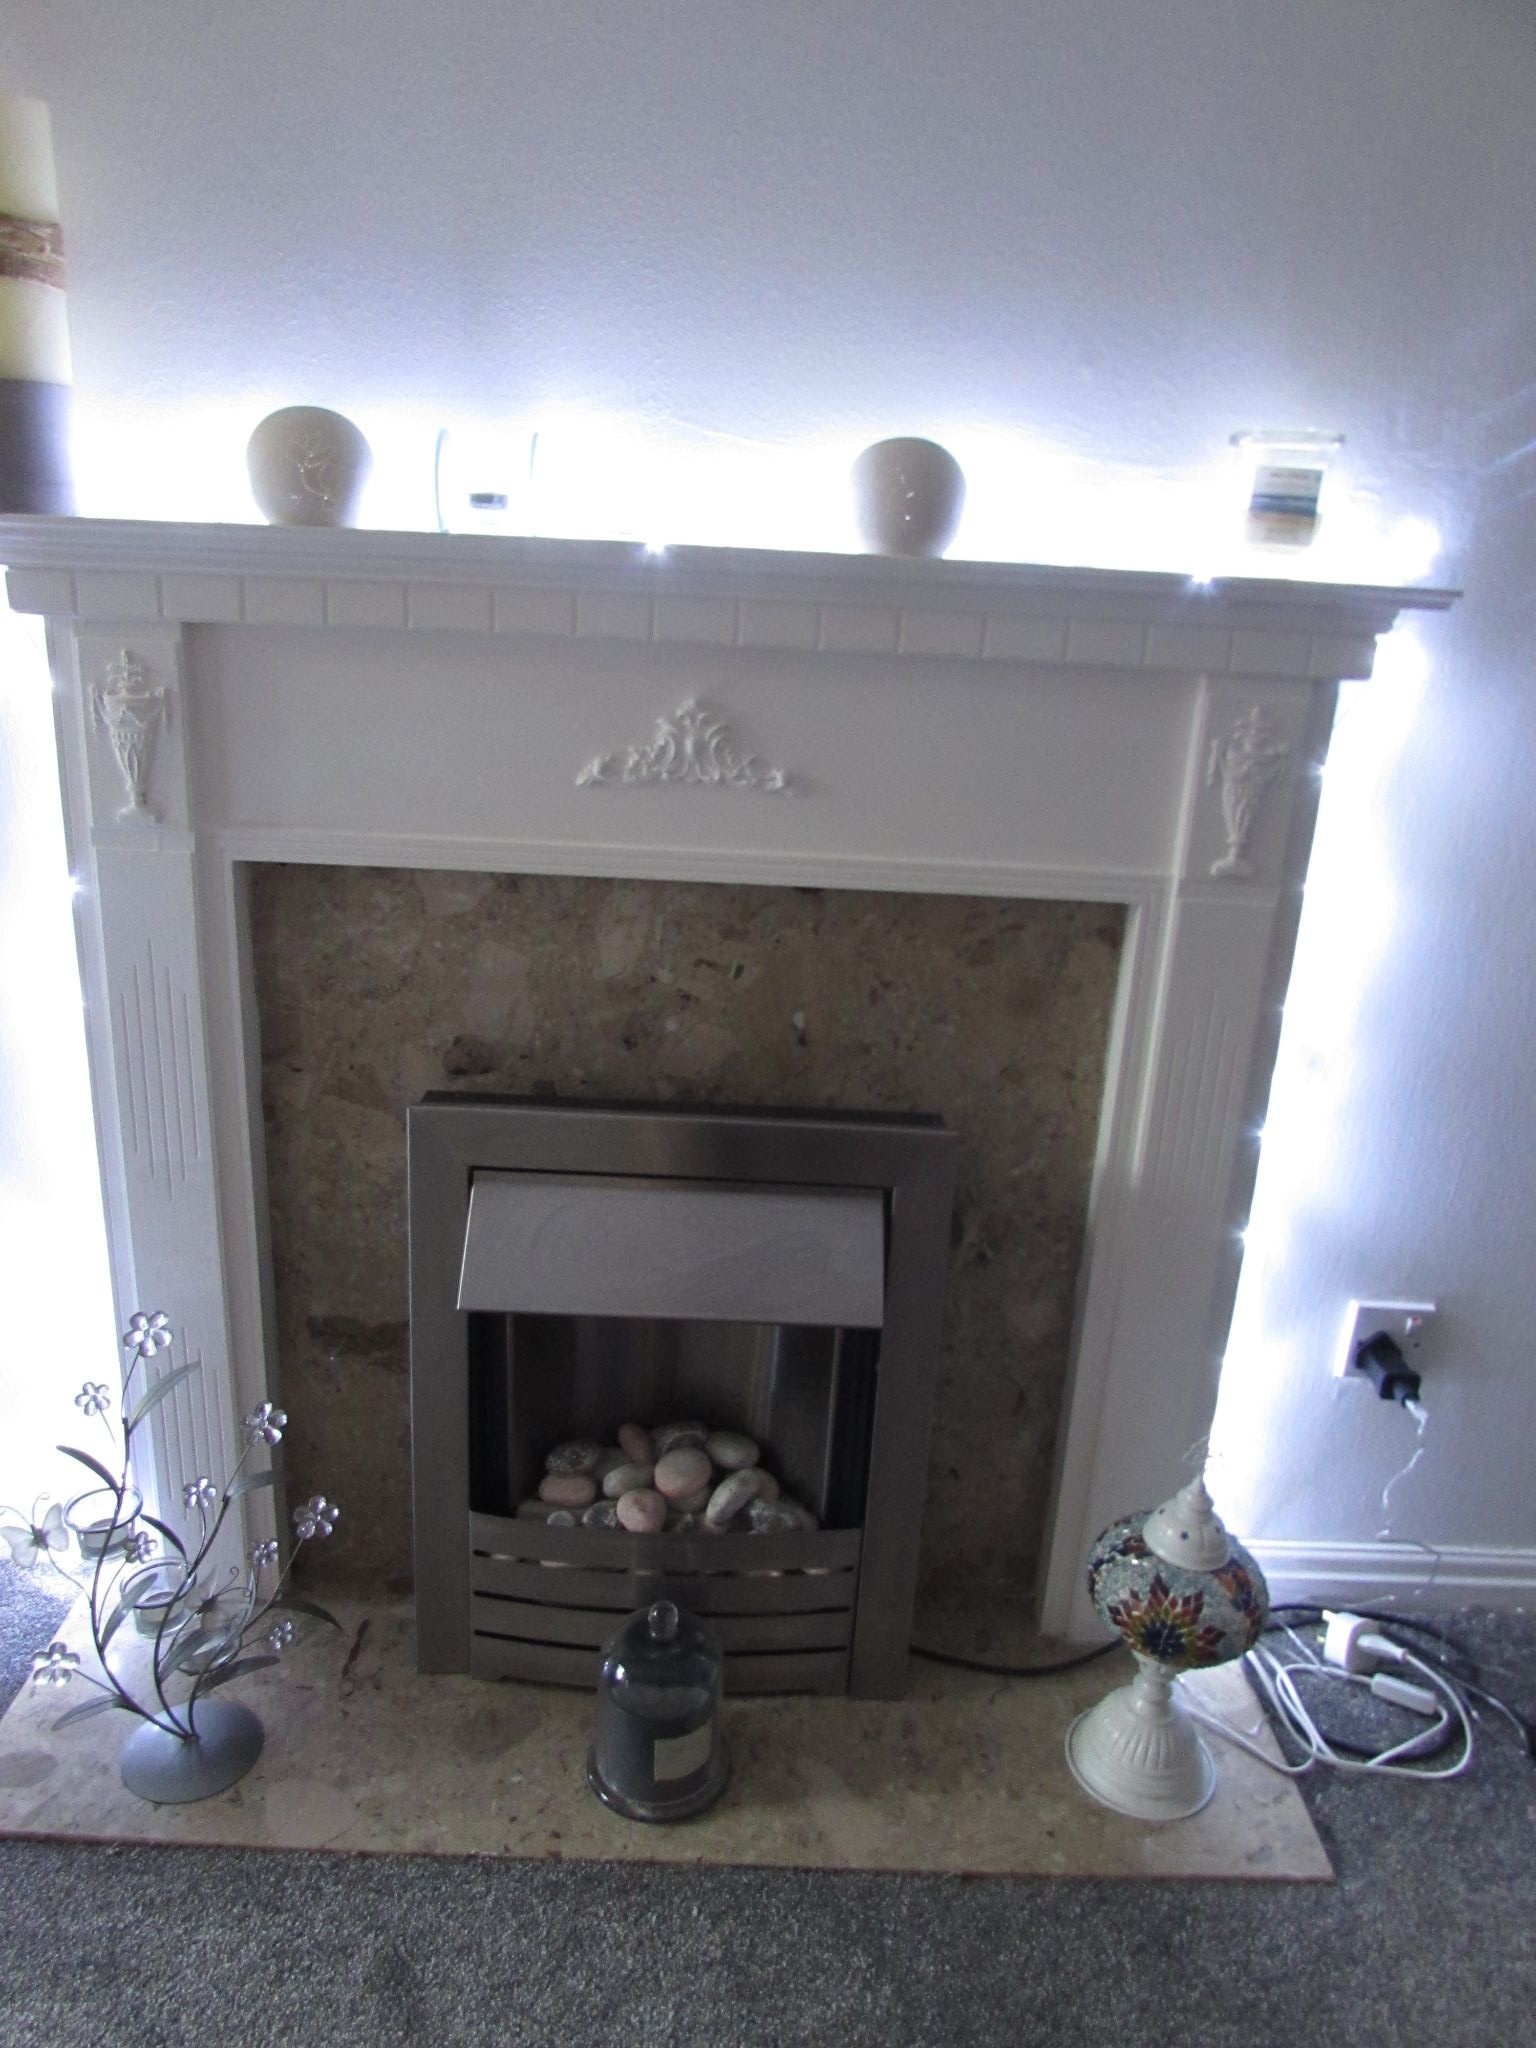 1 Bedroom Ground Floor Flat/apartment For Sale - Photograph 7